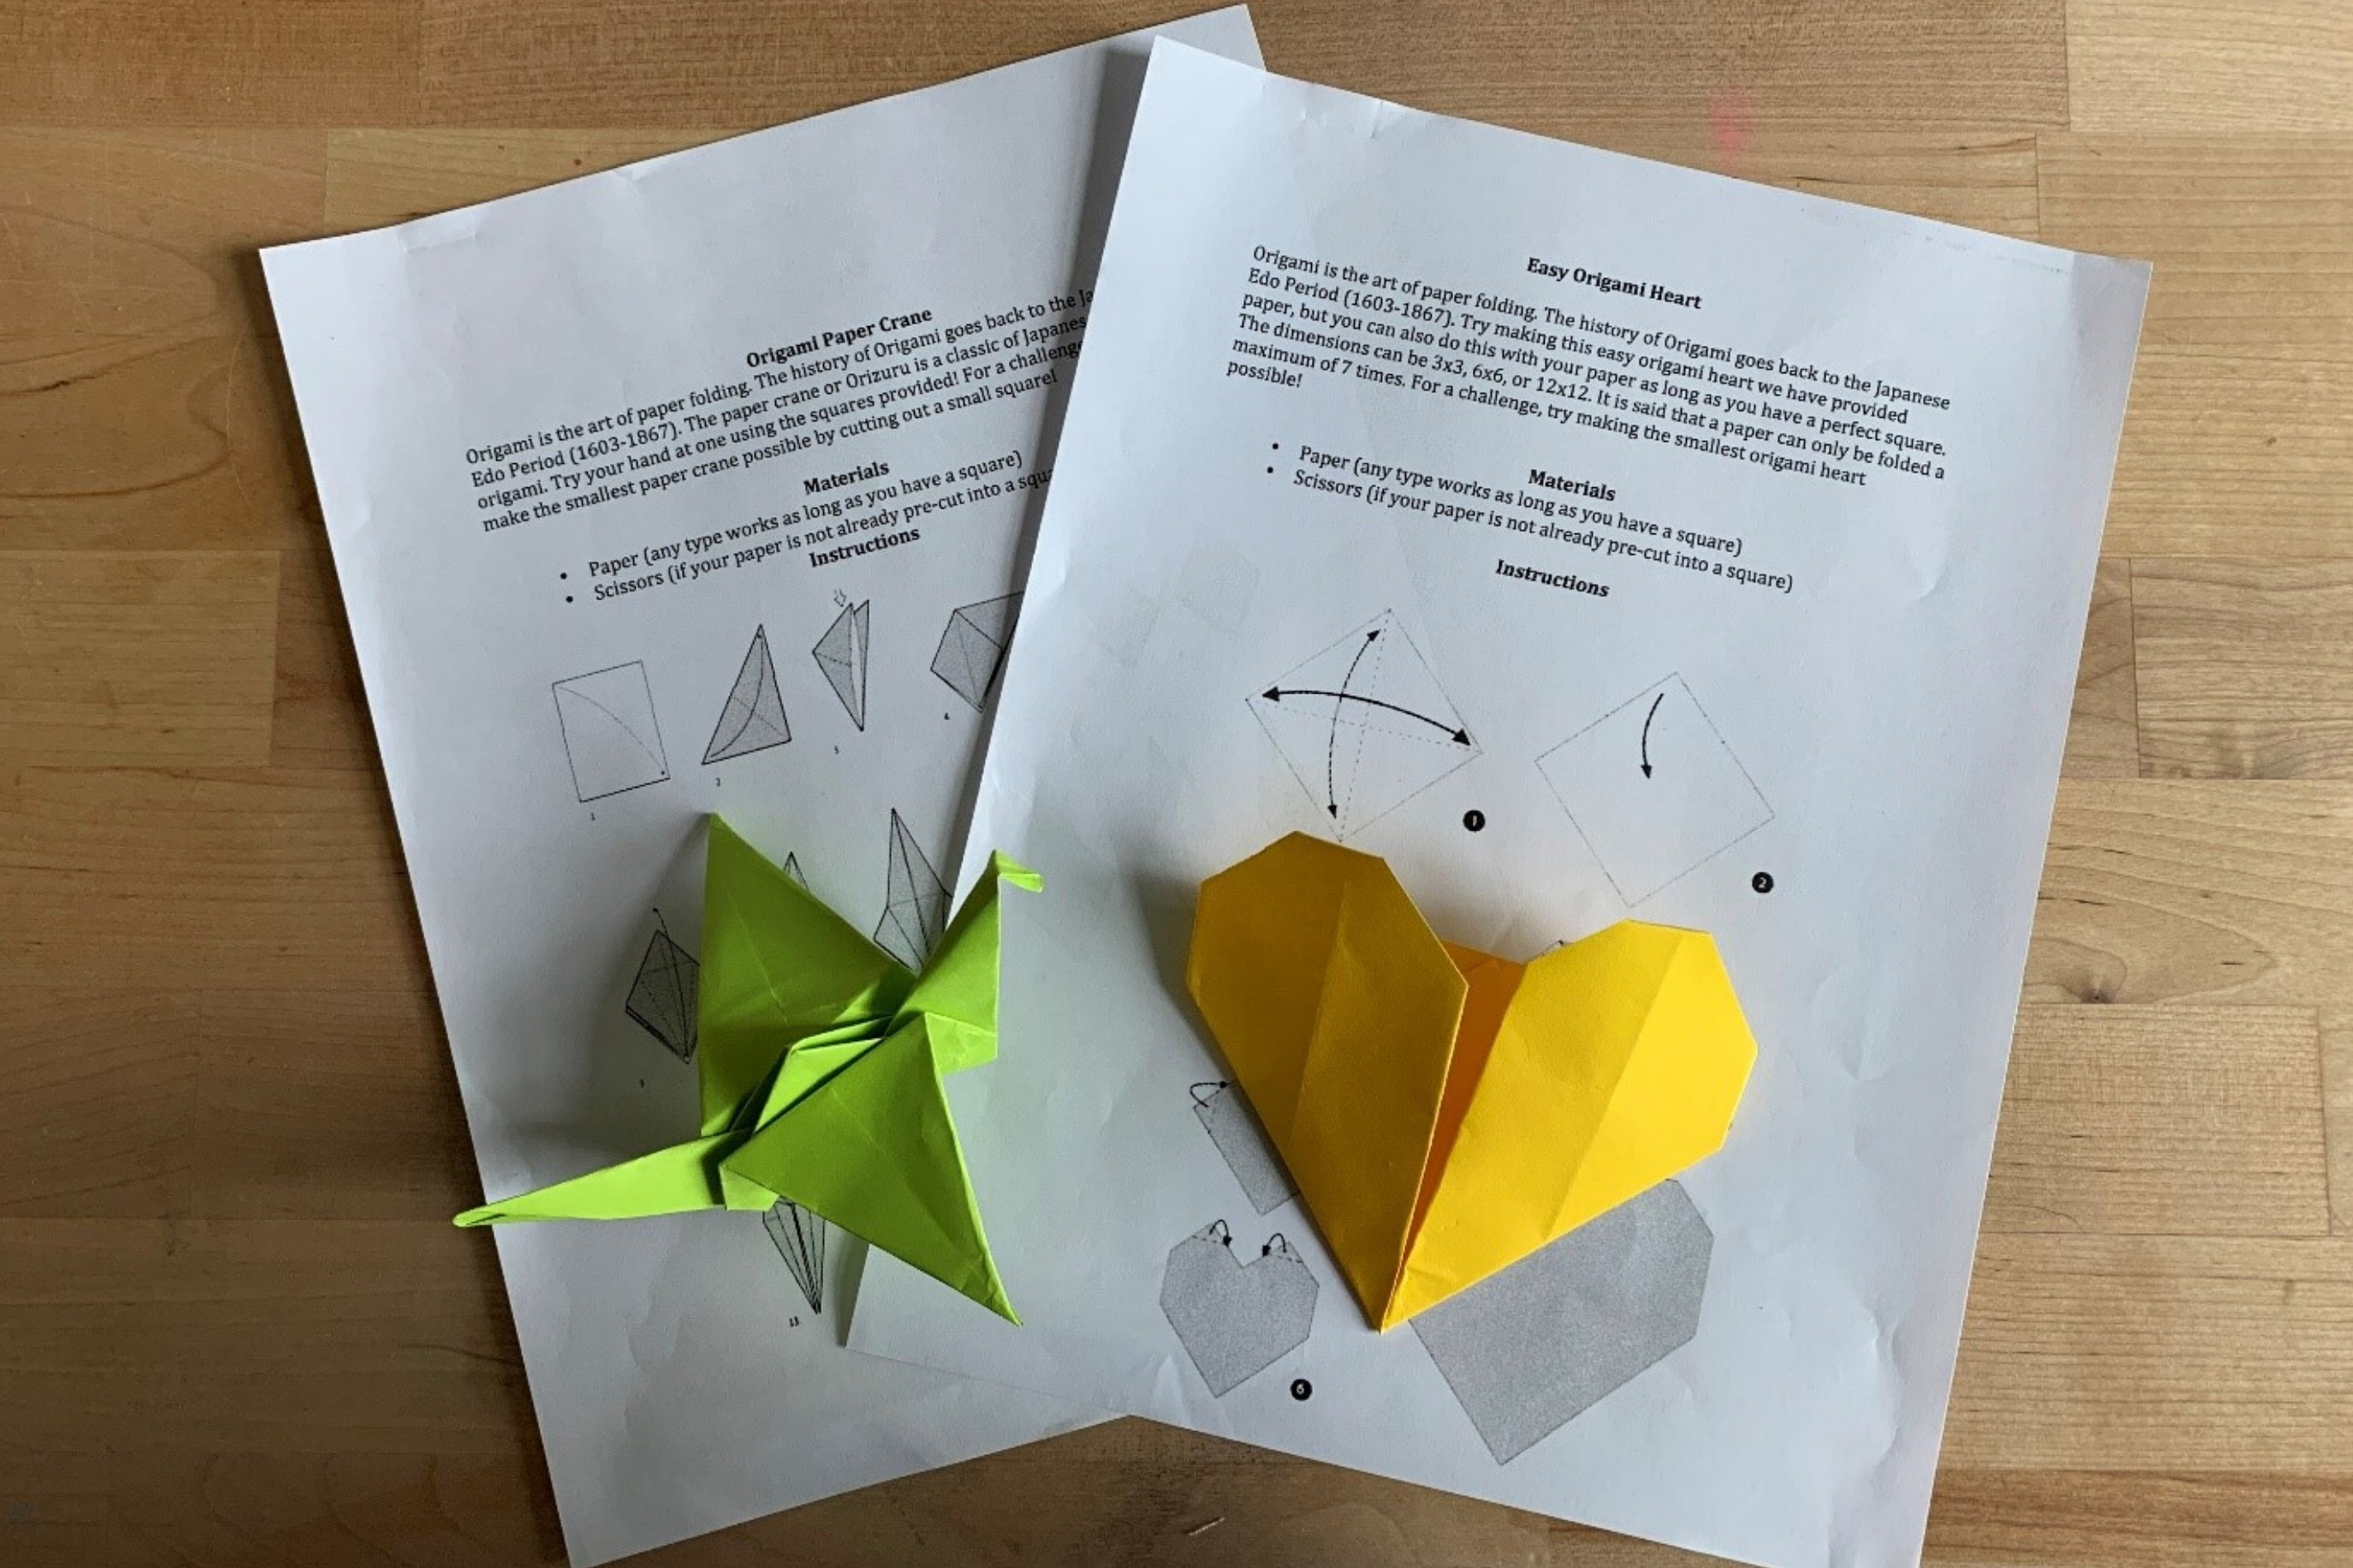 Arts and Crafts: Origami Heart & Paper Crane